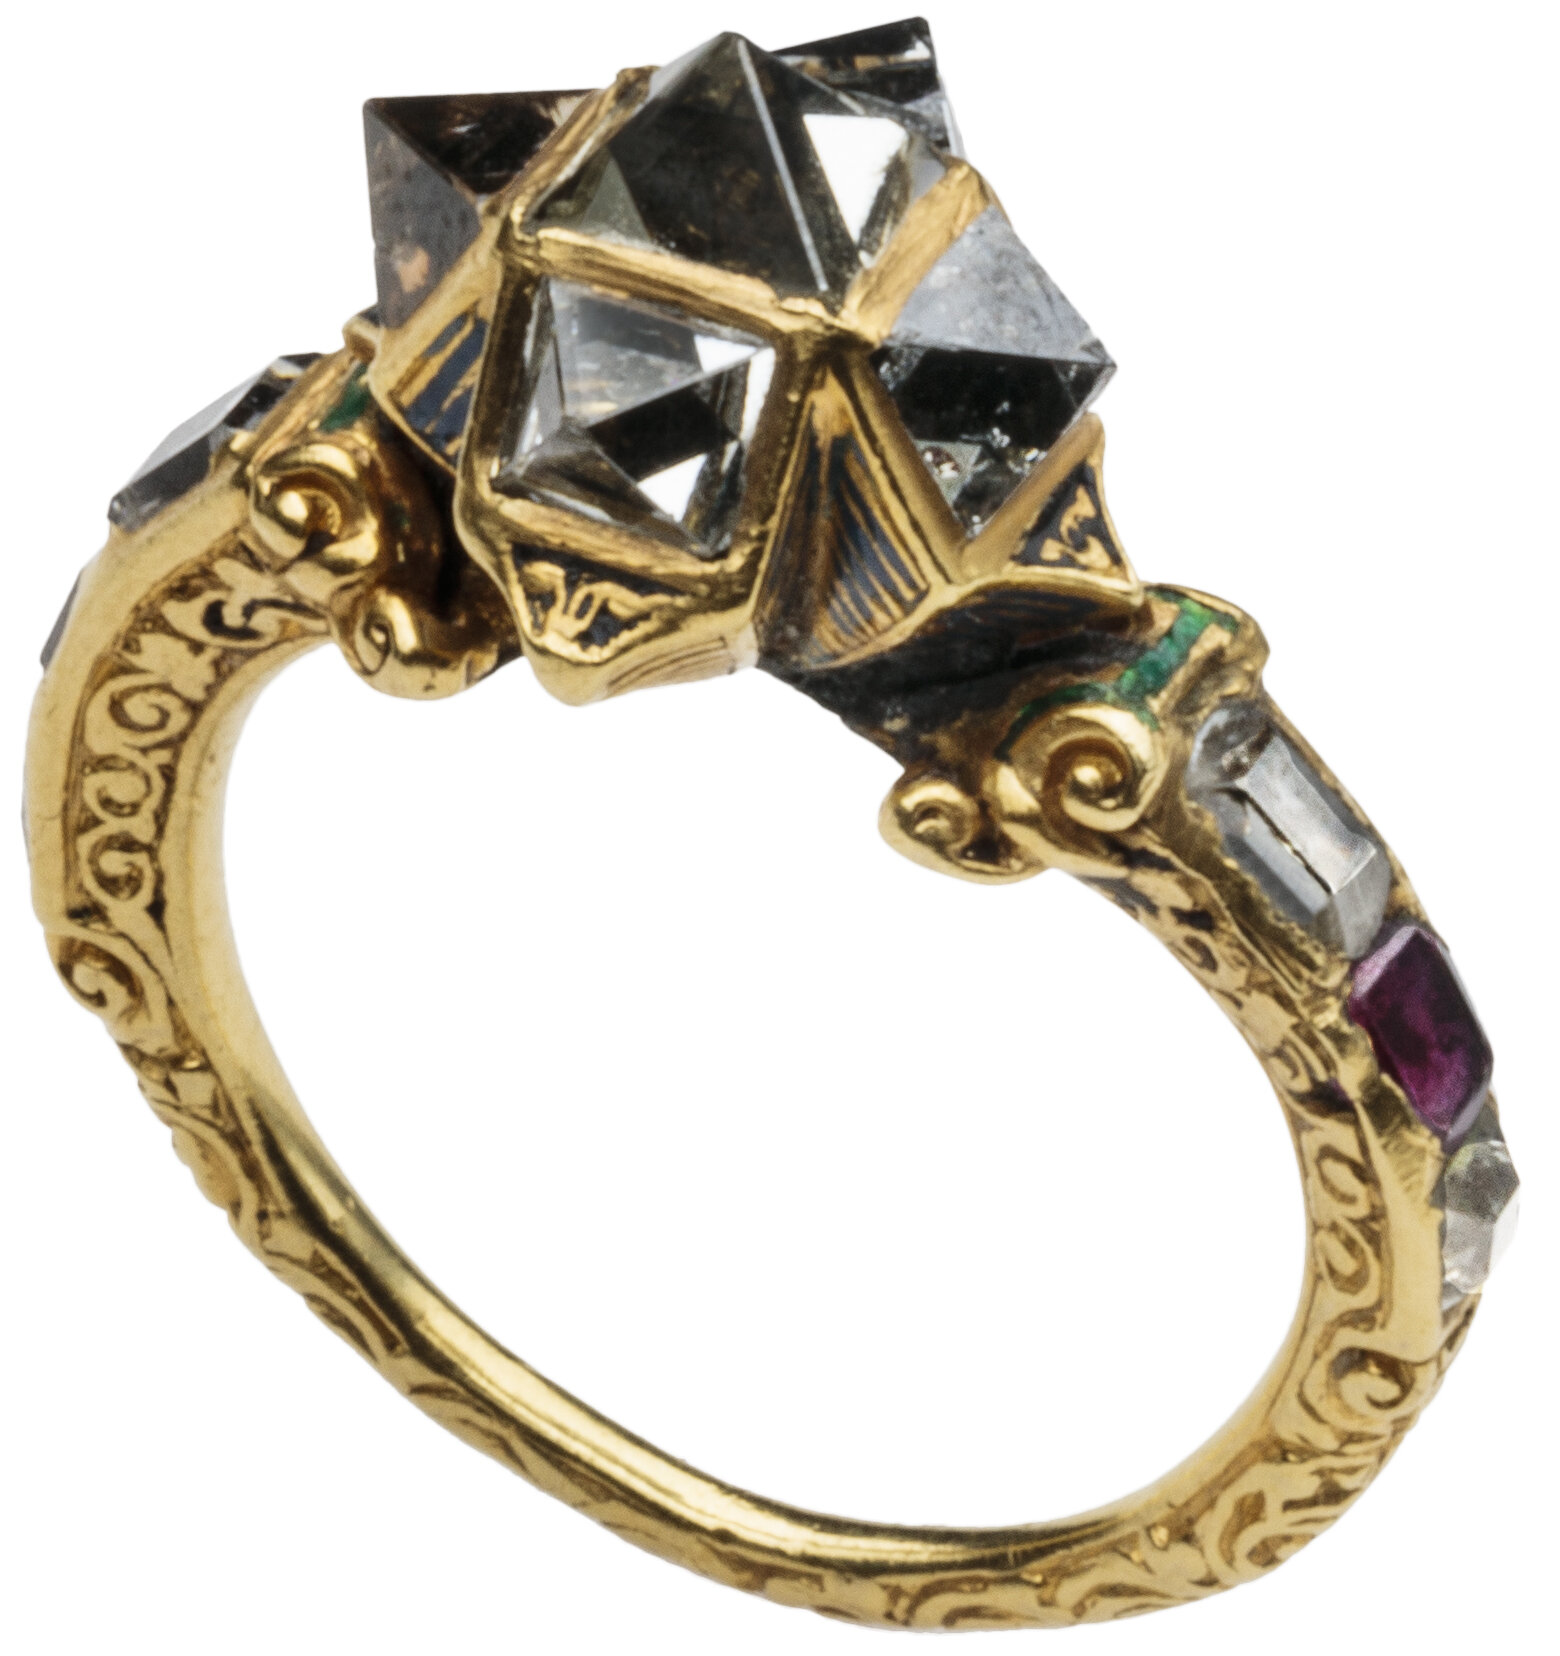 The Spitzer Renaissance Diamond, Ruby and Enamel Ring Italy, (Venice?), 16th century  Gold ring, the hoop chased with scrolls terminating at projecting shoulders each set with a ruby between two table cut diamonds supporting the high bezel composed of five point cut diamonds arranged like a star, the backs decorated with a black linear pattern, simulating reeding.